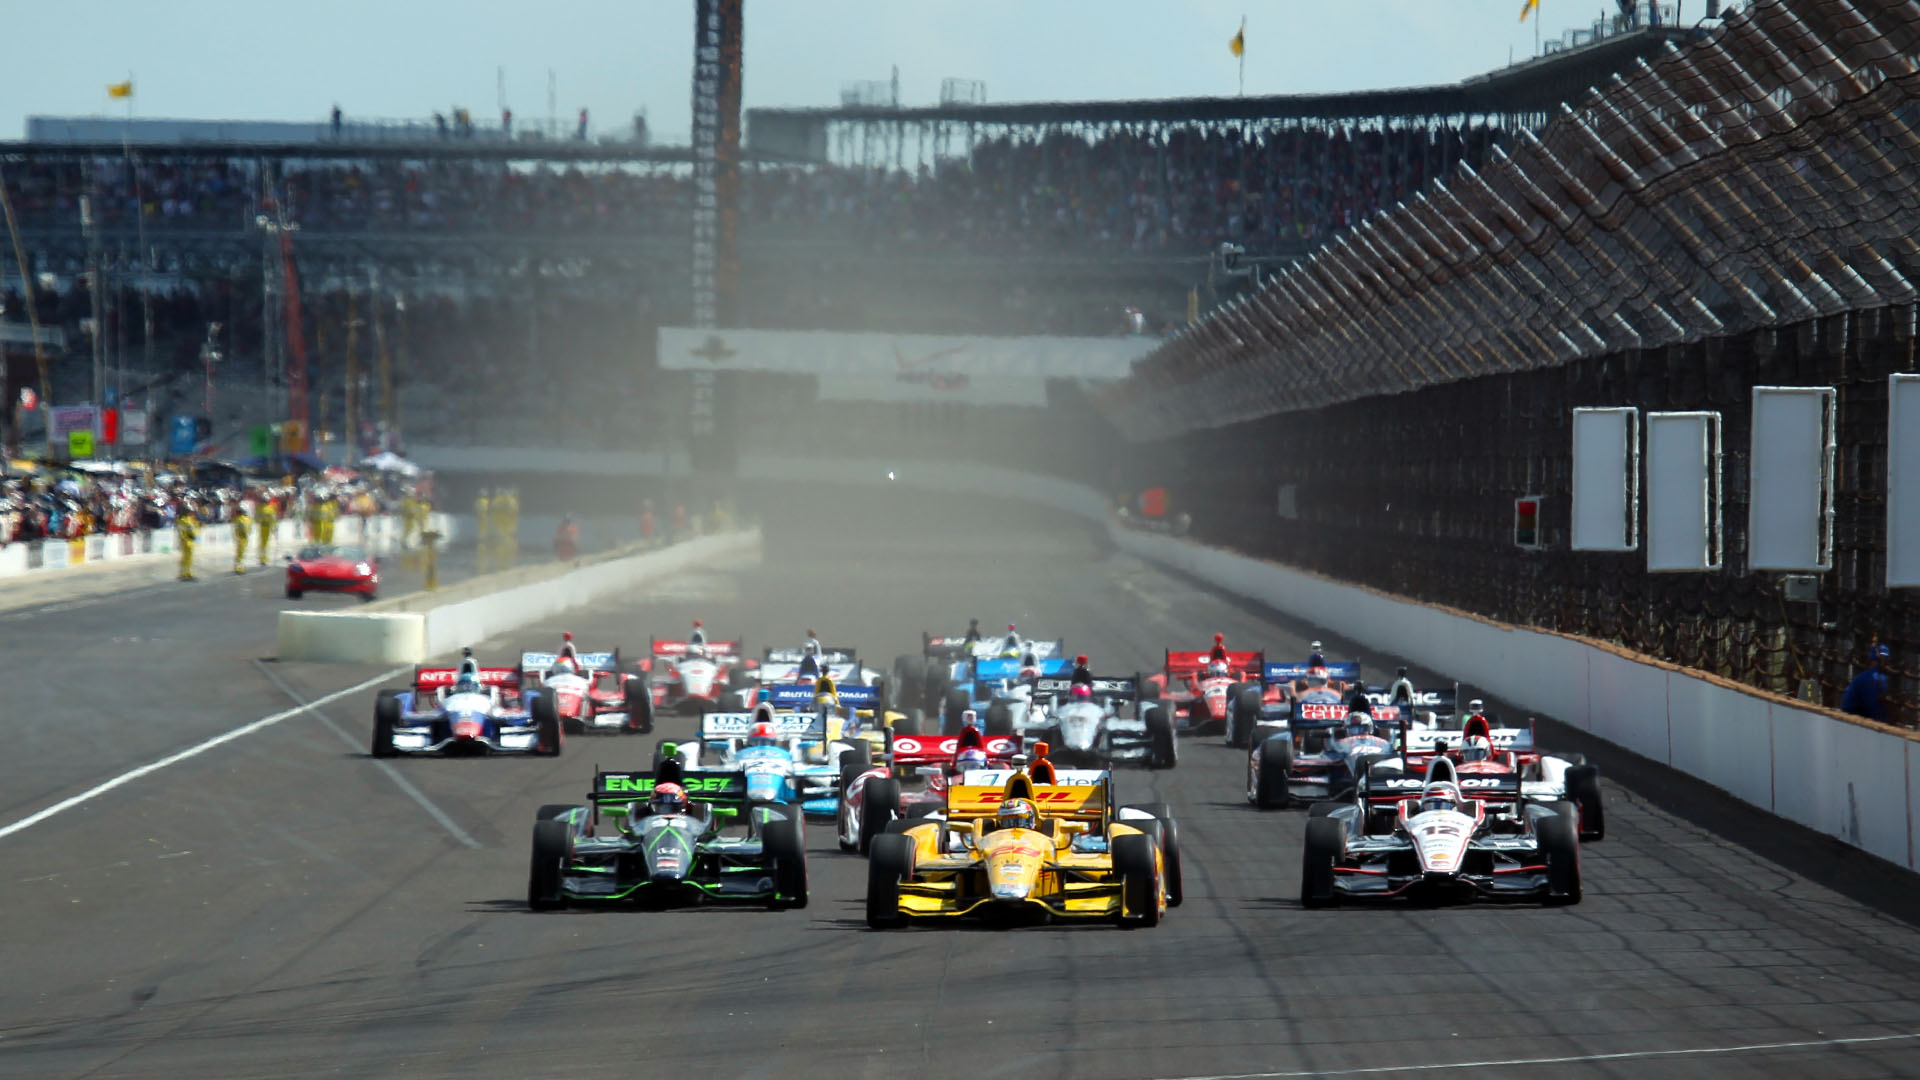 Calendario Indycar.Novita Sul Possibile Calendario Indycar 2015 Motorsport Italia